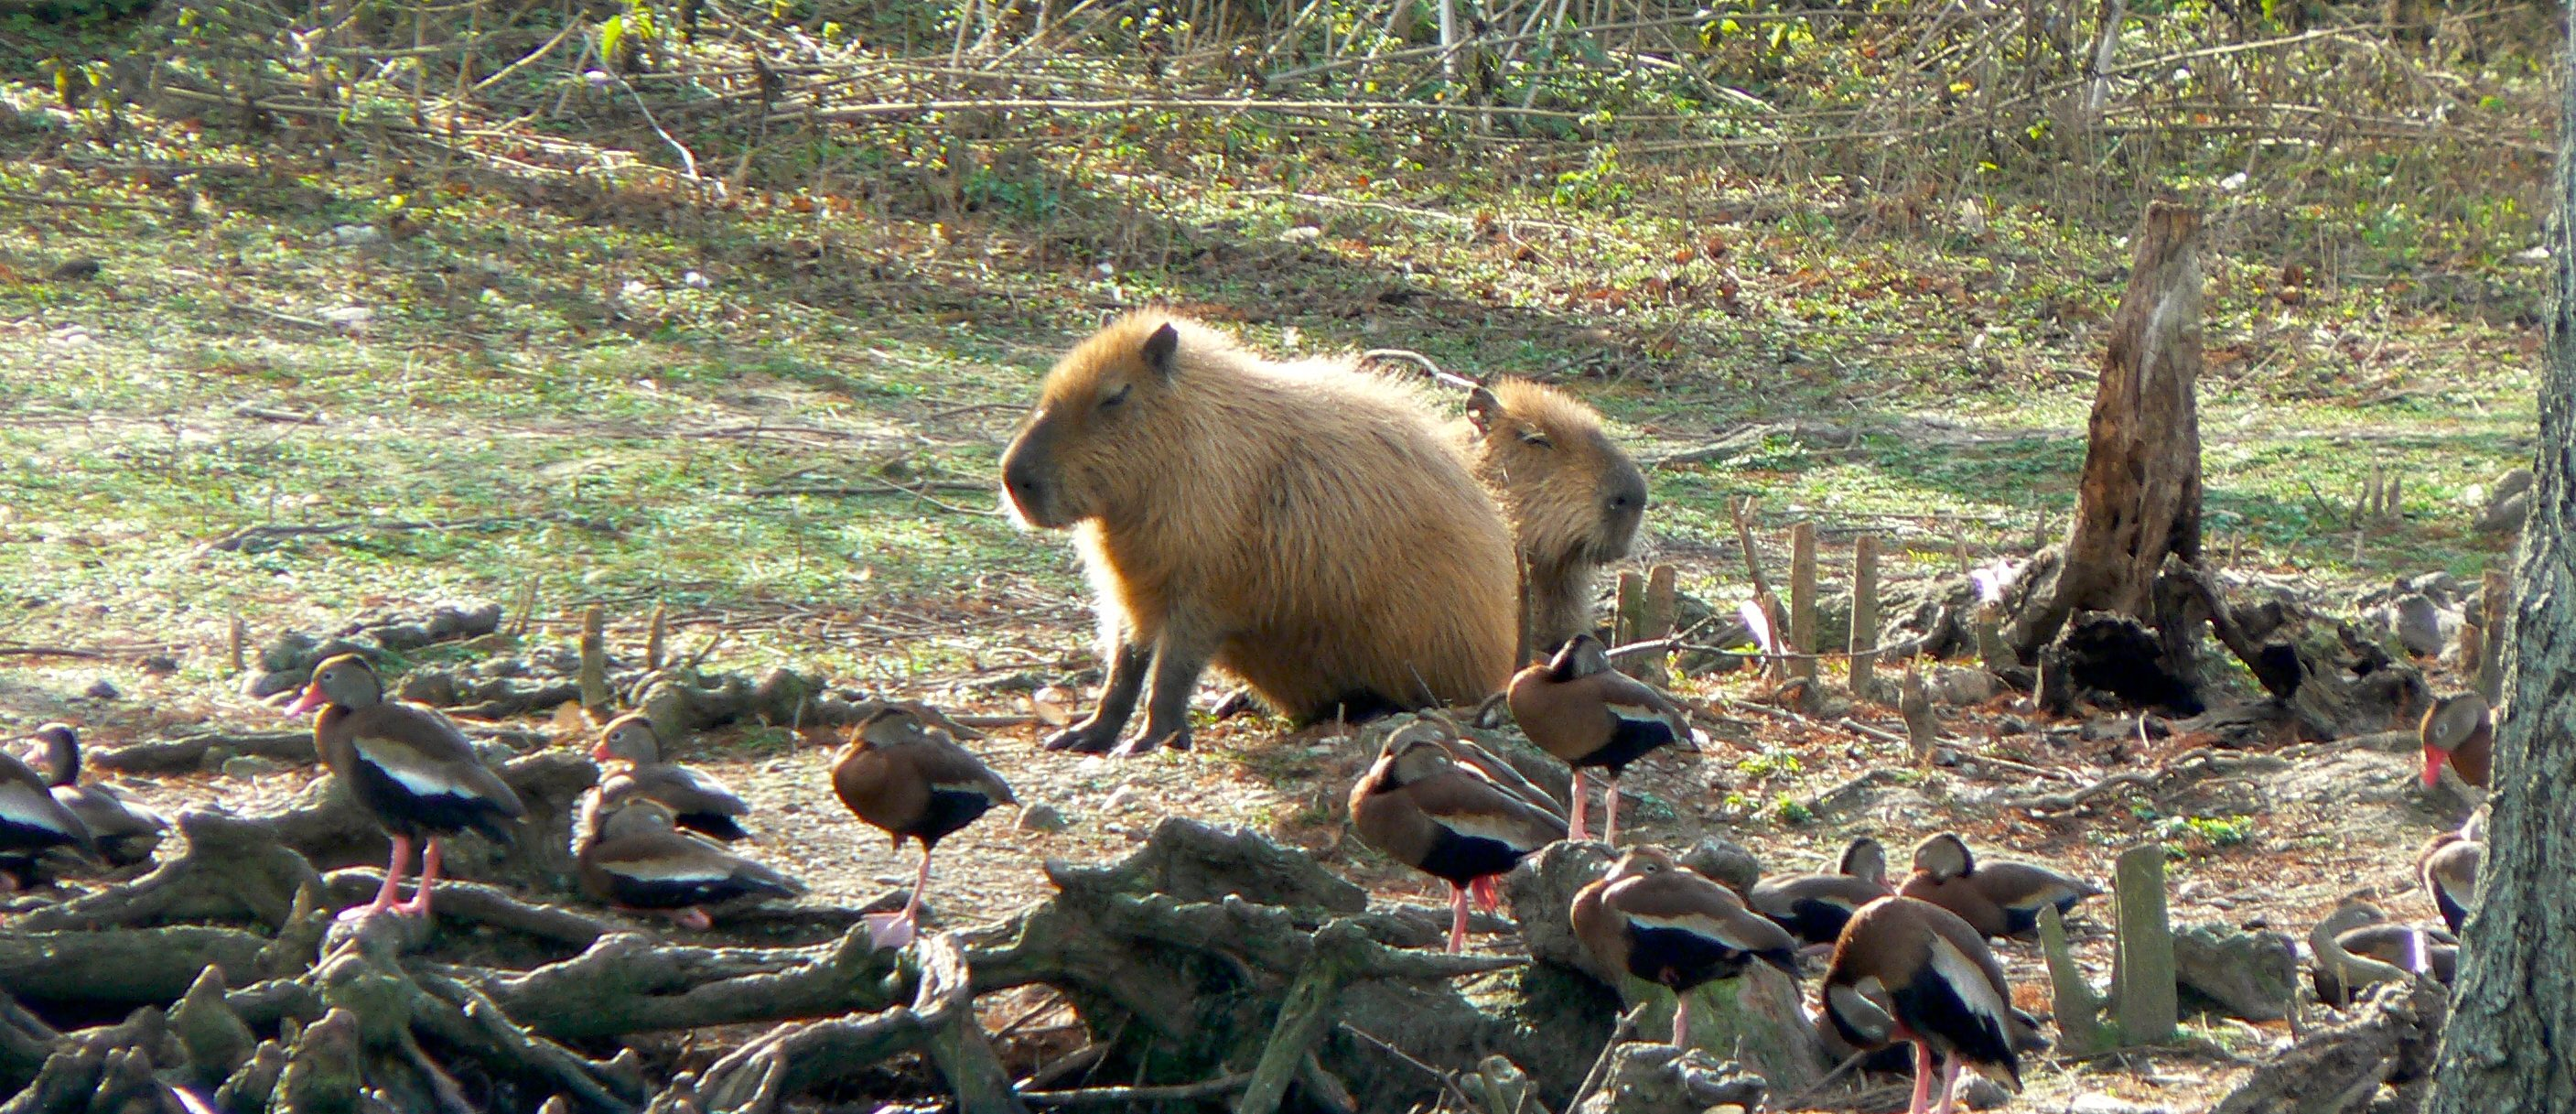 The Zoo Project: Capybara Version